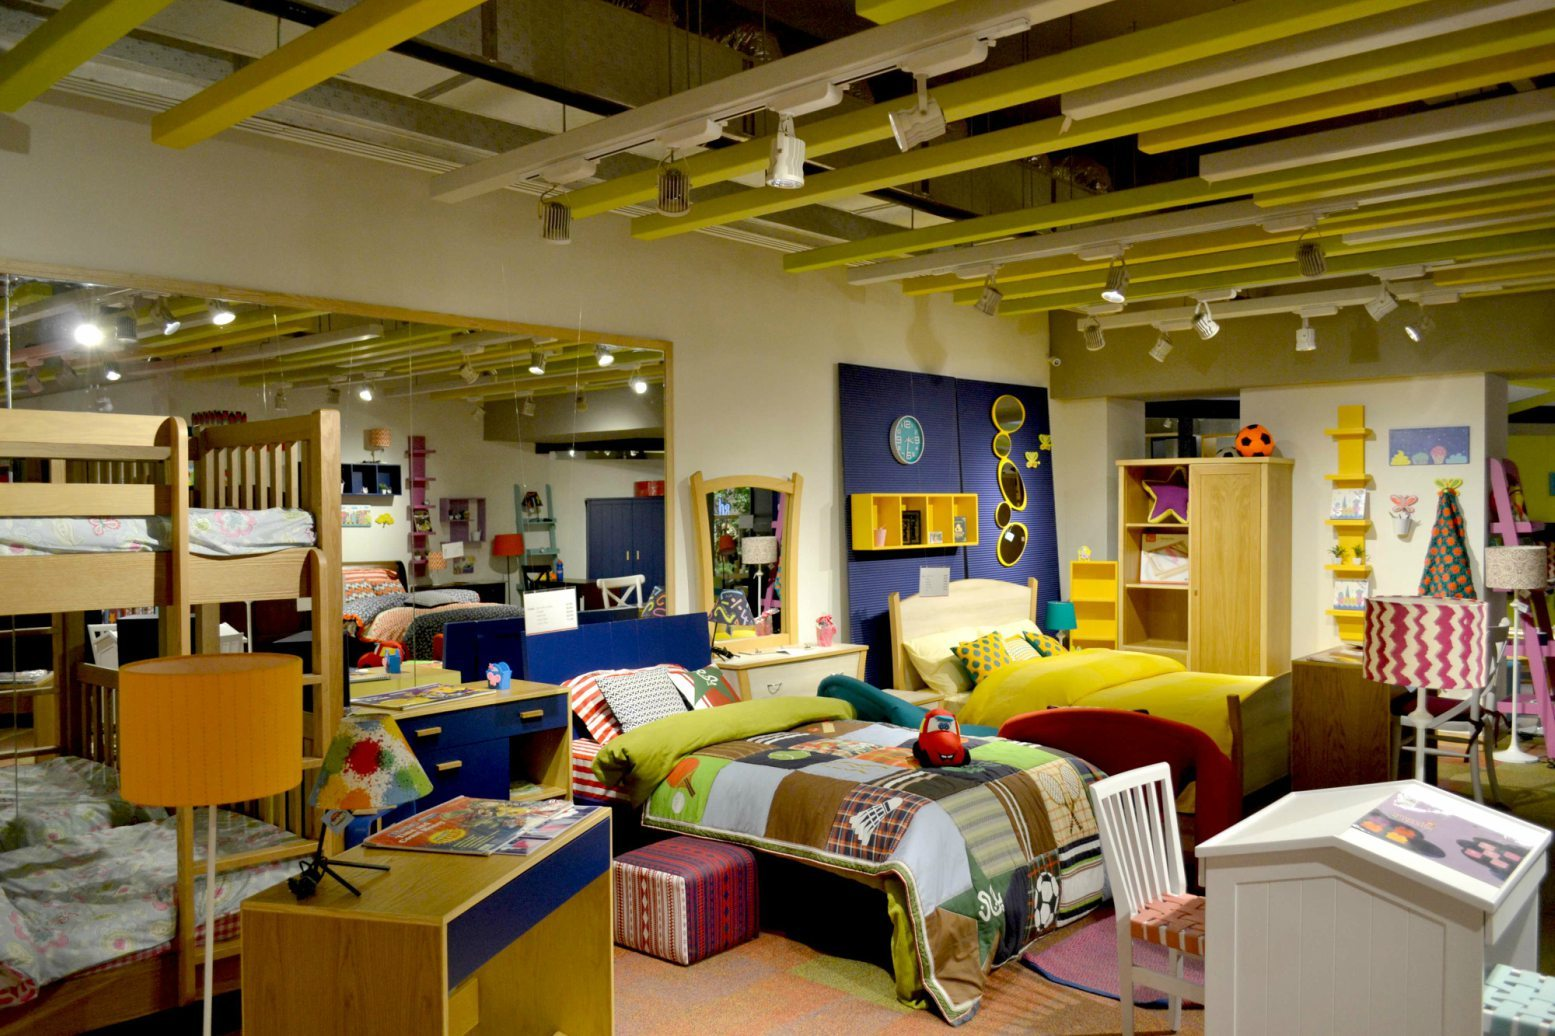 Phenomenal How A Visit To Little Habitt Revived Childhood Memories Of Beatyapartments Chair Design Images Beatyapartmentscom